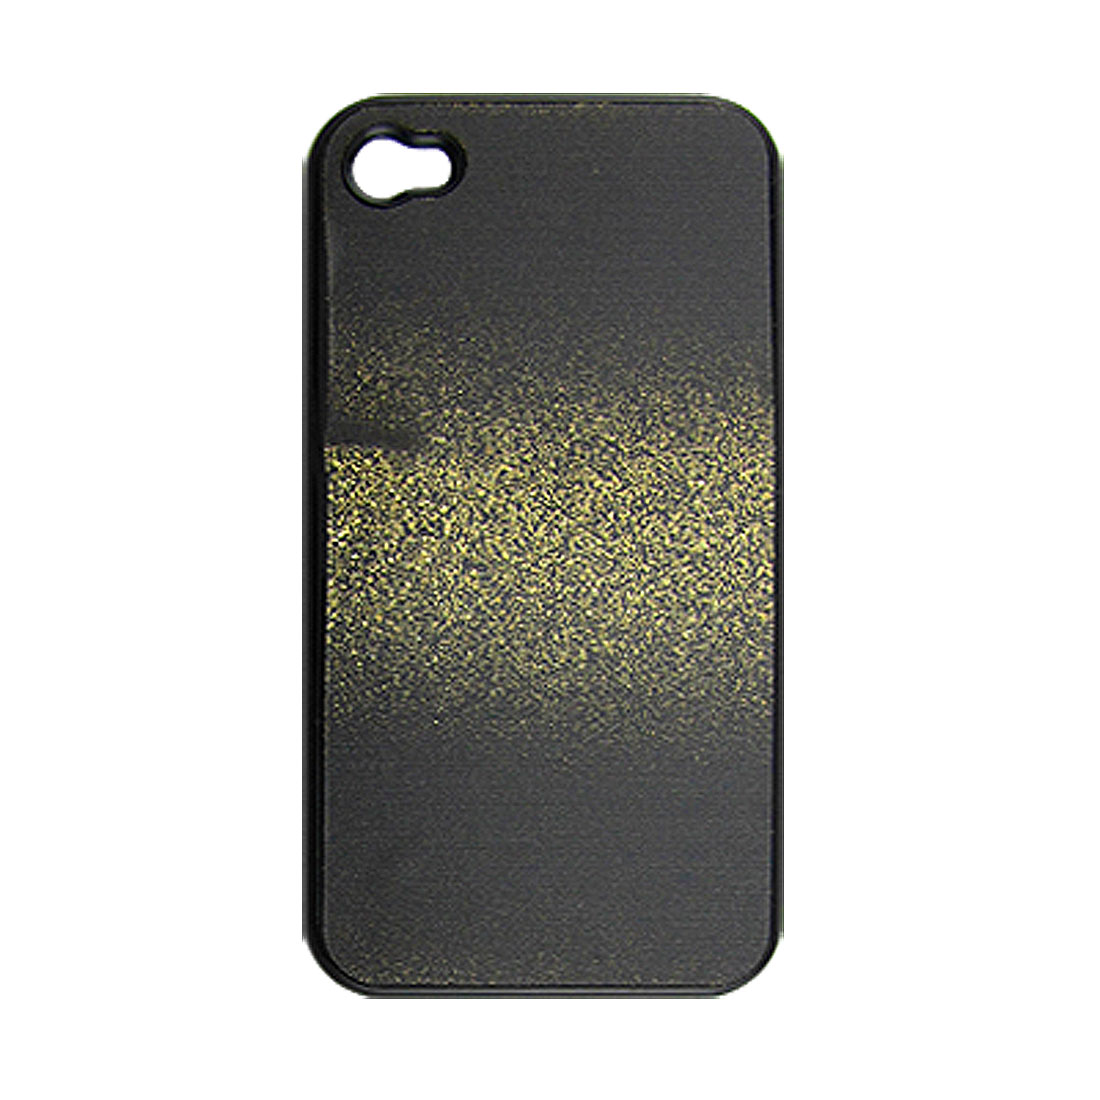 Sparkling Gold Tone Black Plastic Cover for iPhone 4 4G